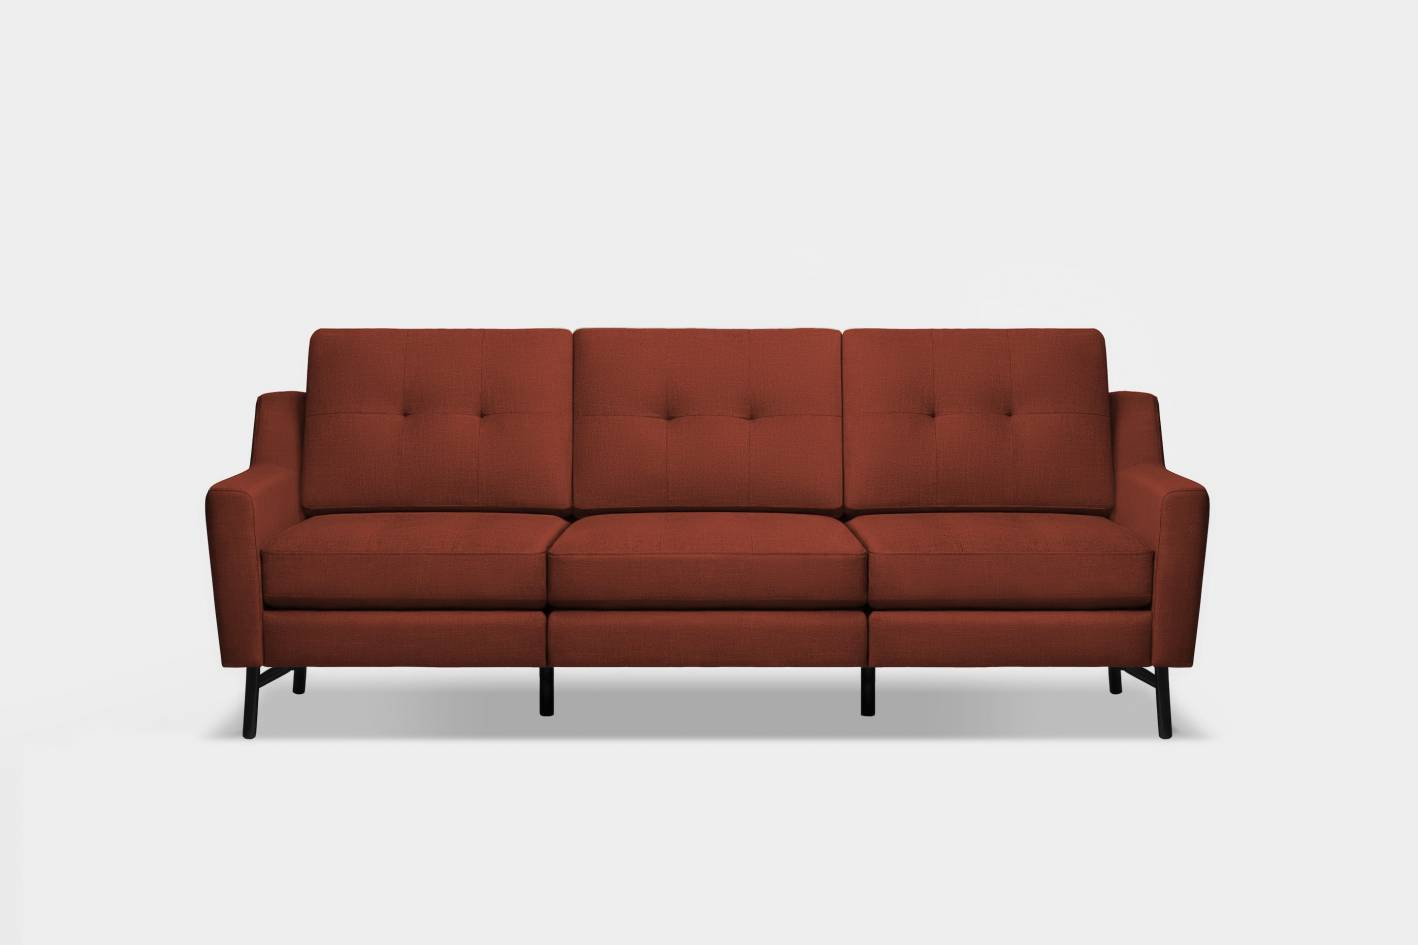 stylish furniture, home, sg approved